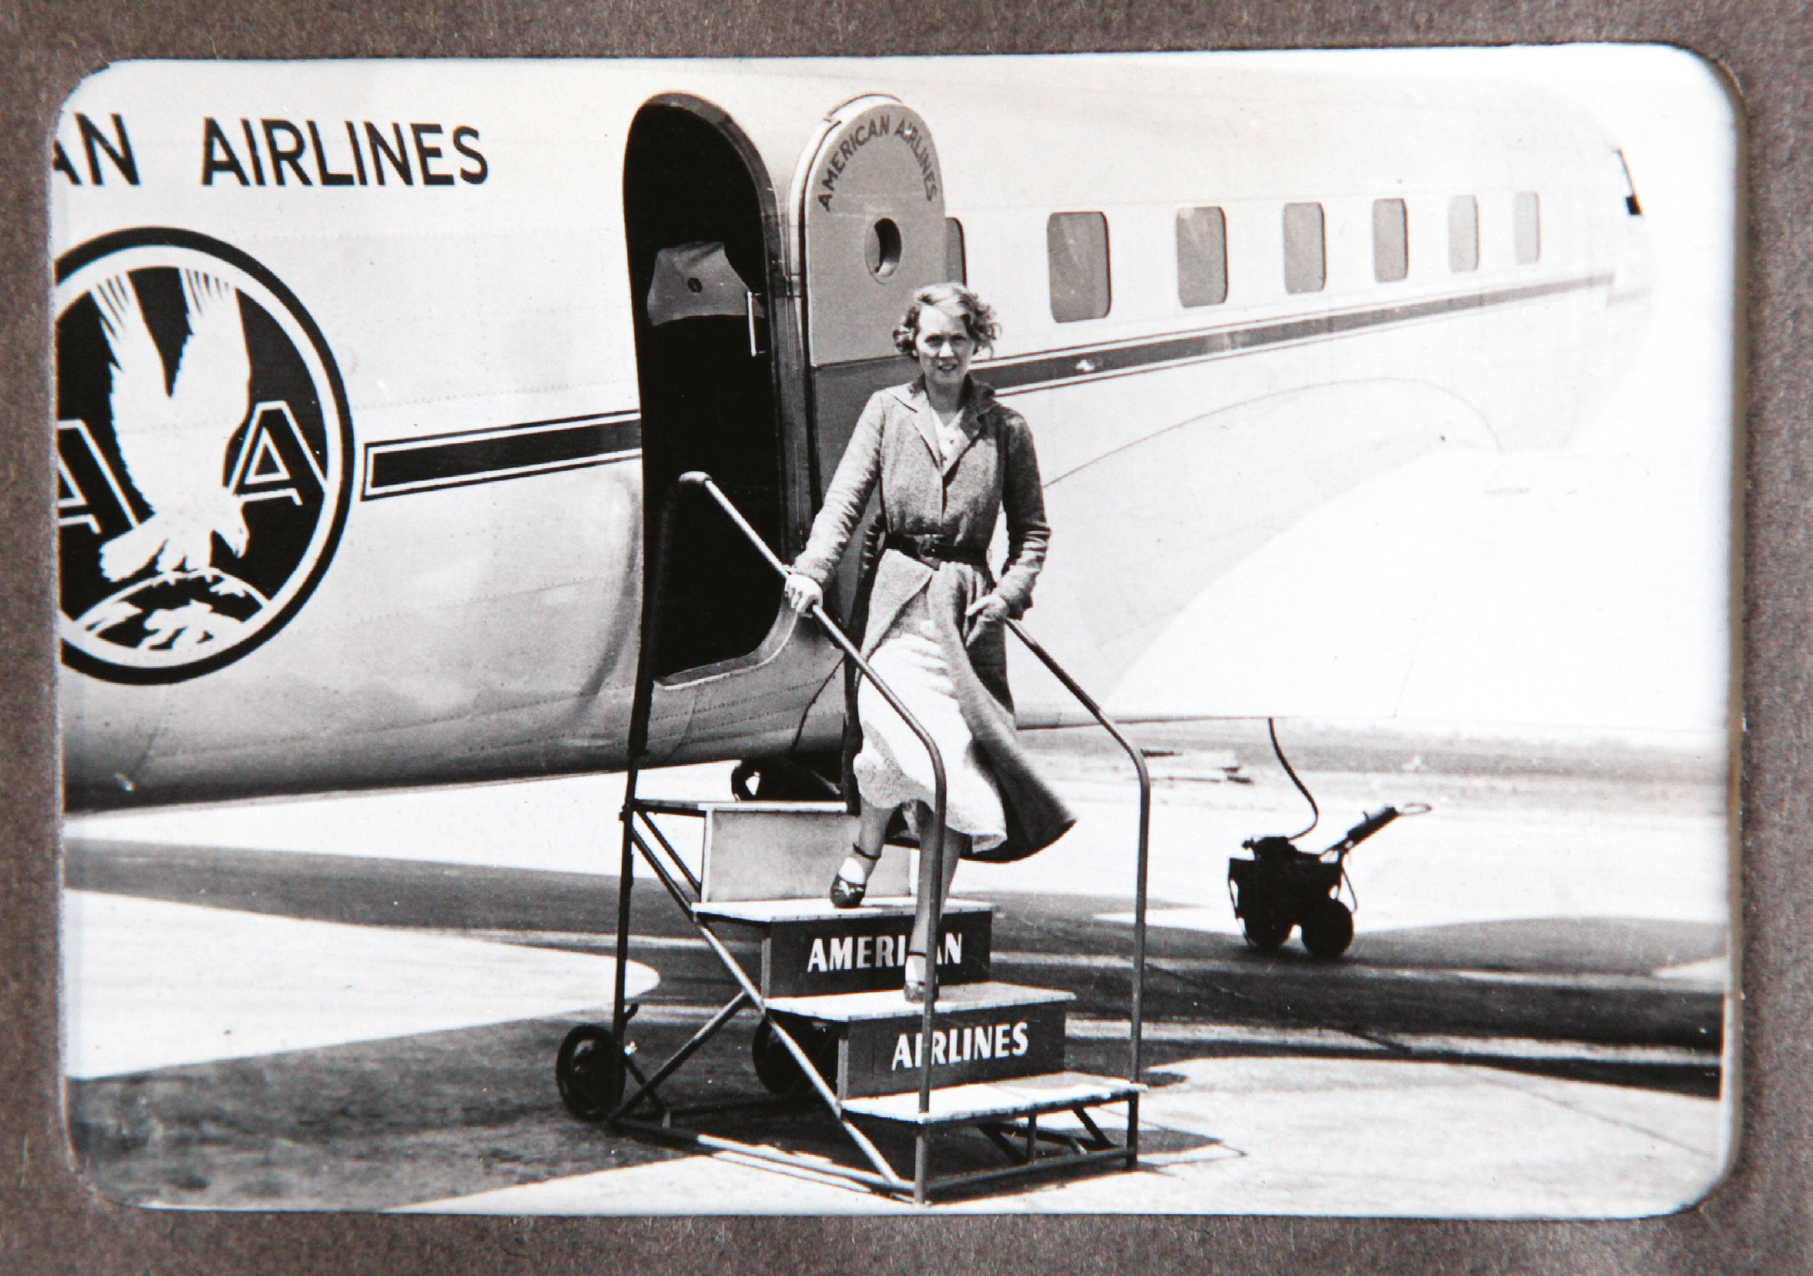 Faith Murray steps from an American Airlines aeroplane during the couple's visit in 1936 (picture © The WS Society).